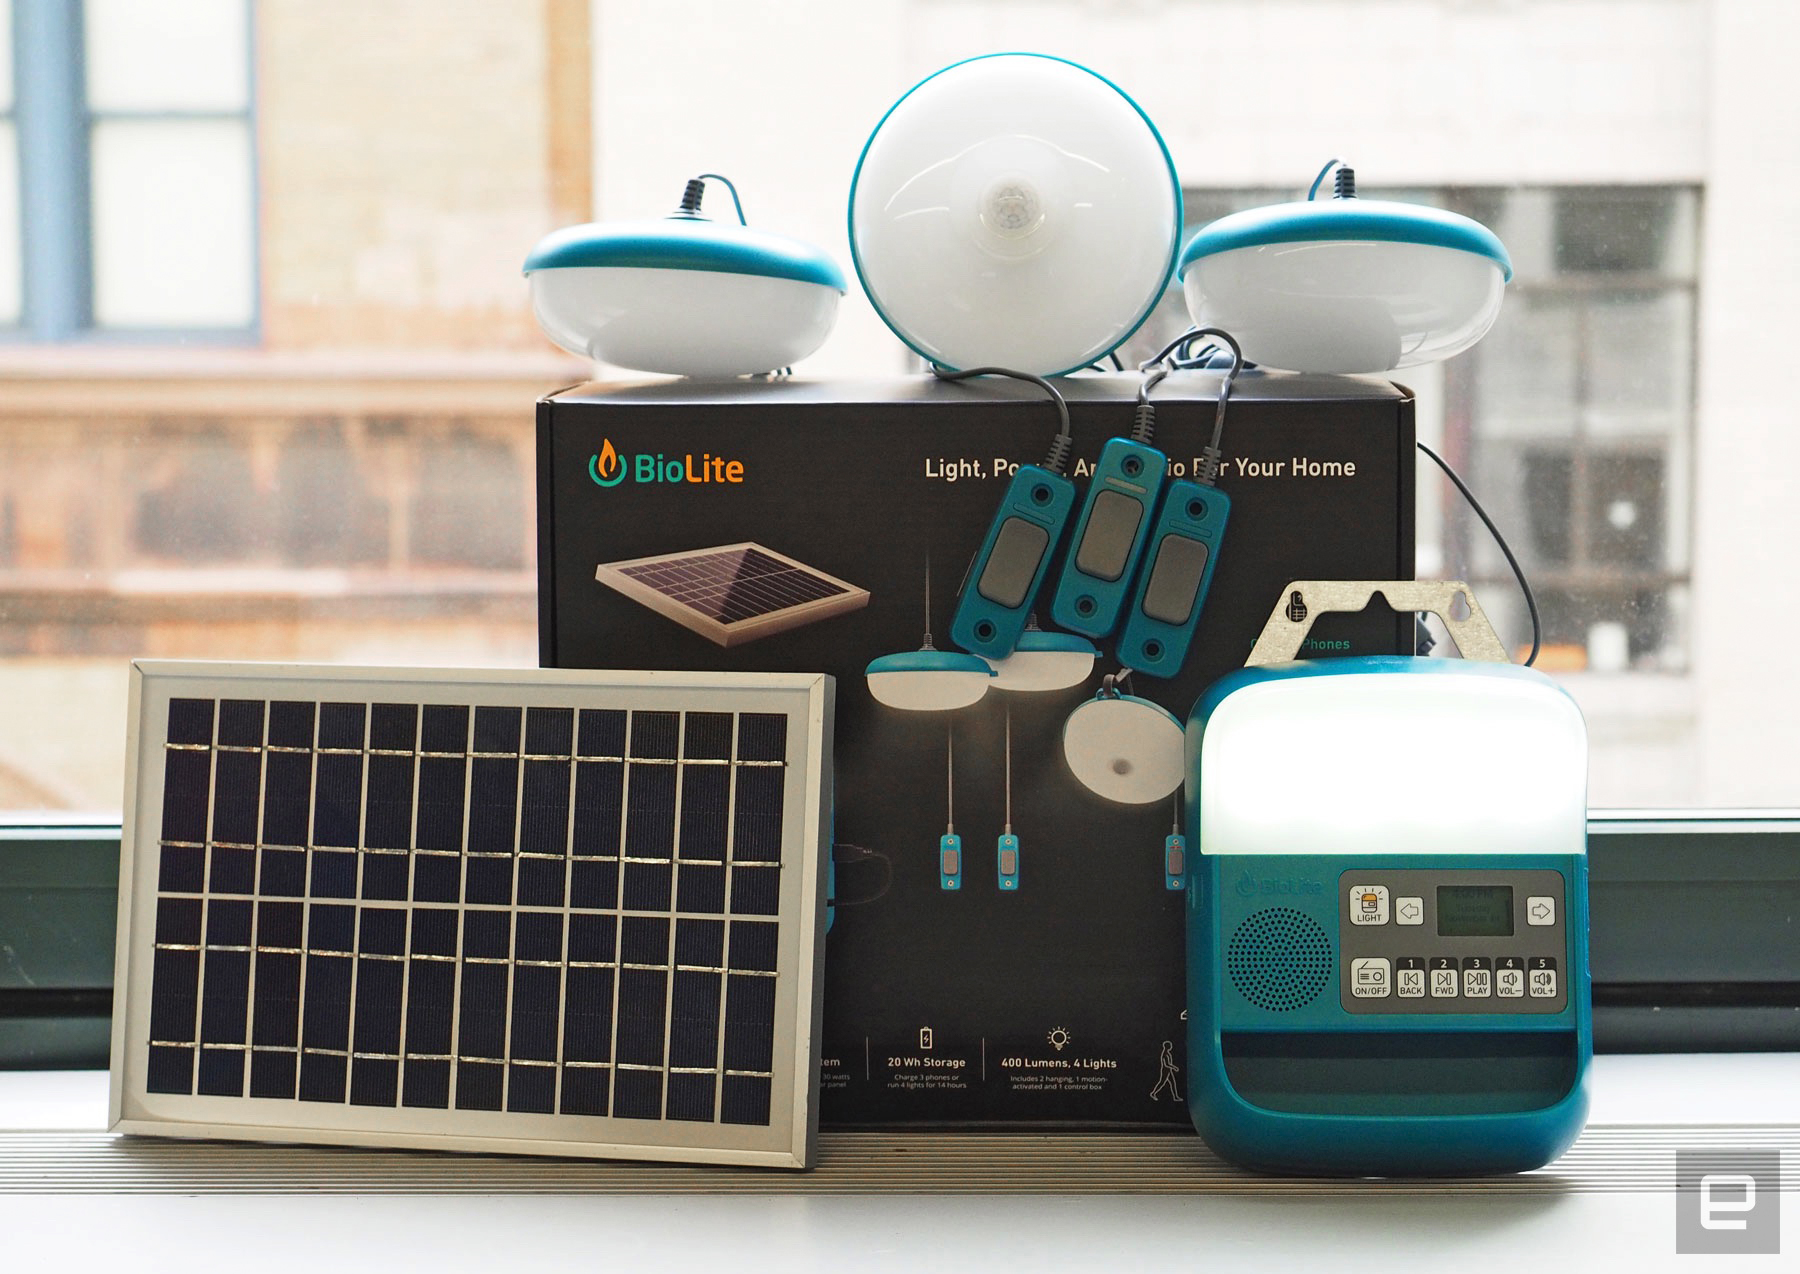 Biolite S Solarhome 620 Provides Power For Everyday Essentials